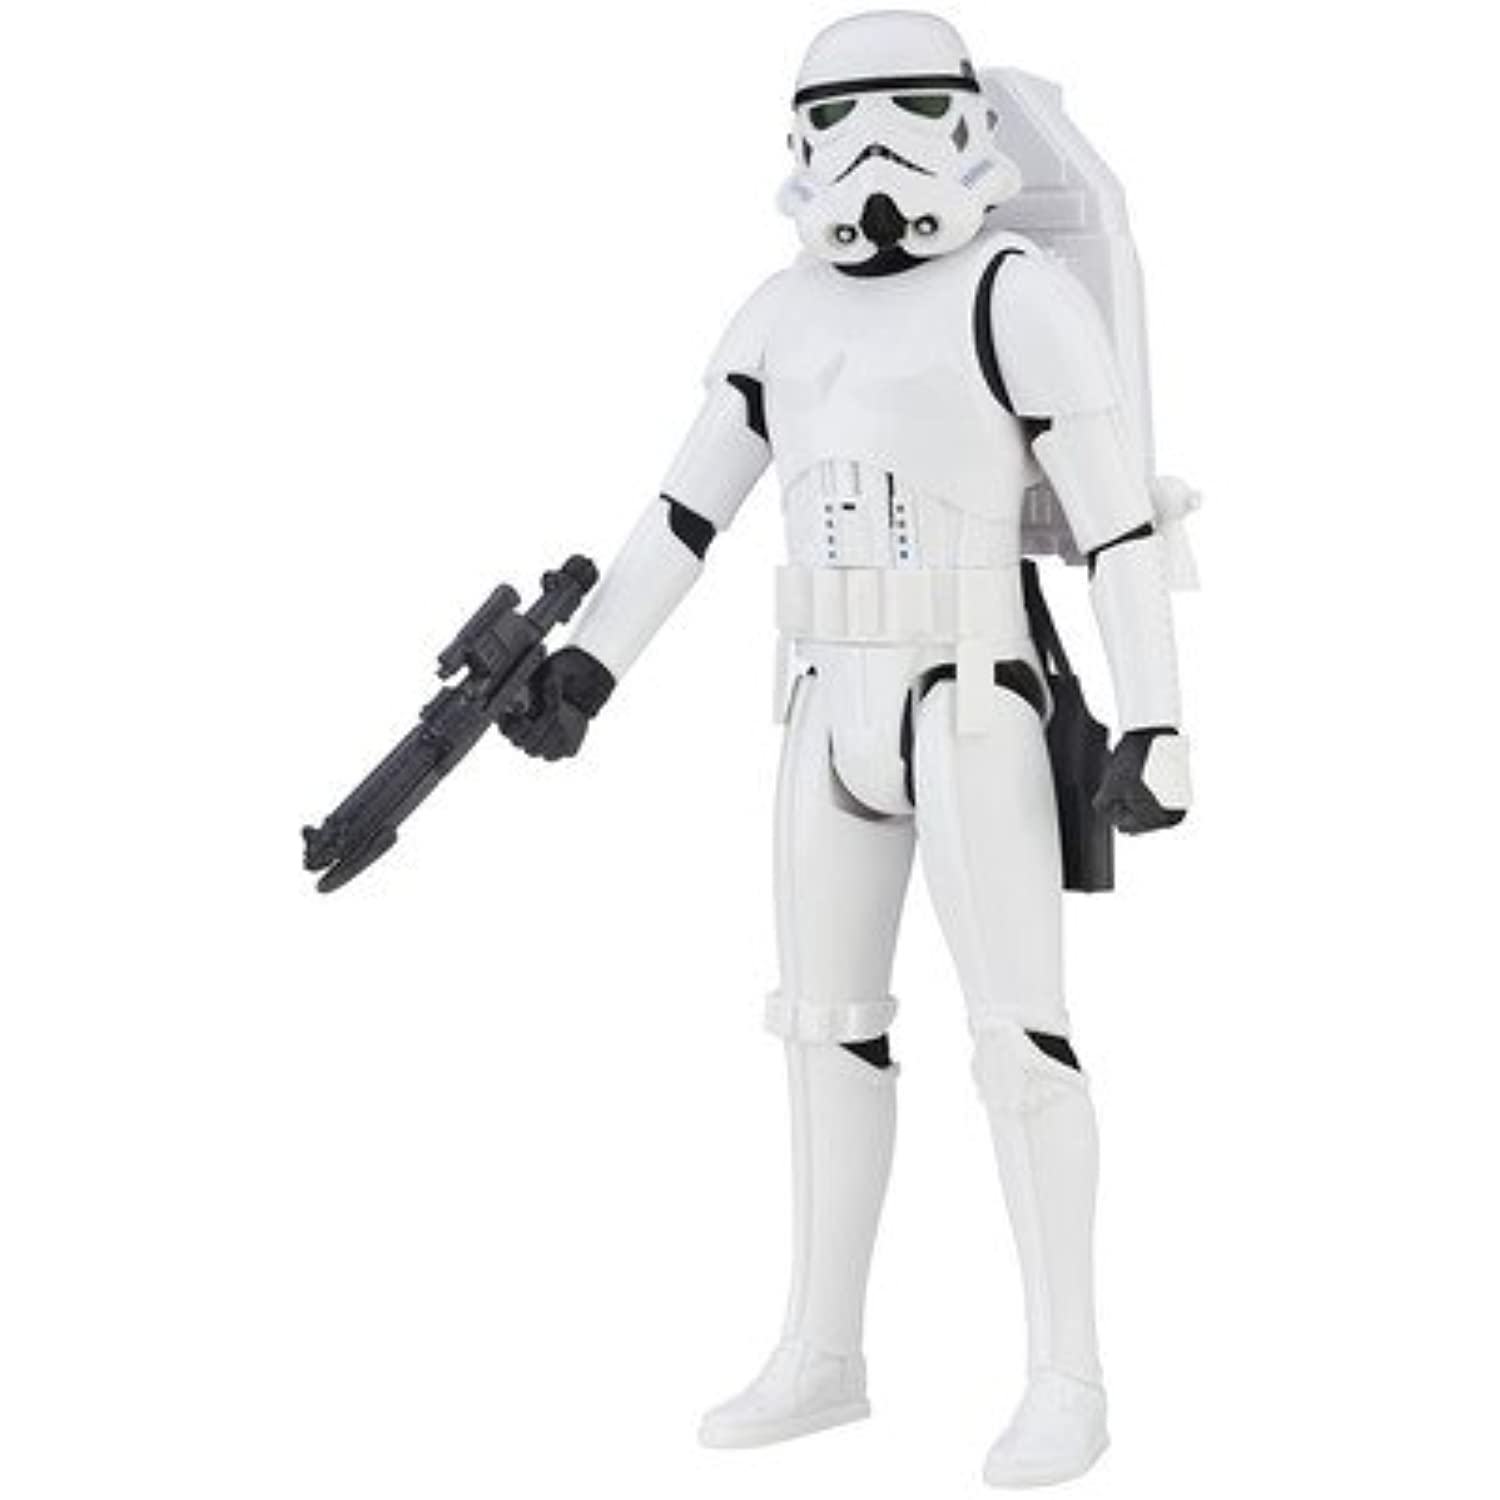 Star Wars(スターウォーズ) Star Wars Interactech Imperial Stormtrooper Action Figure おもちゃ One Size【並行輸入】